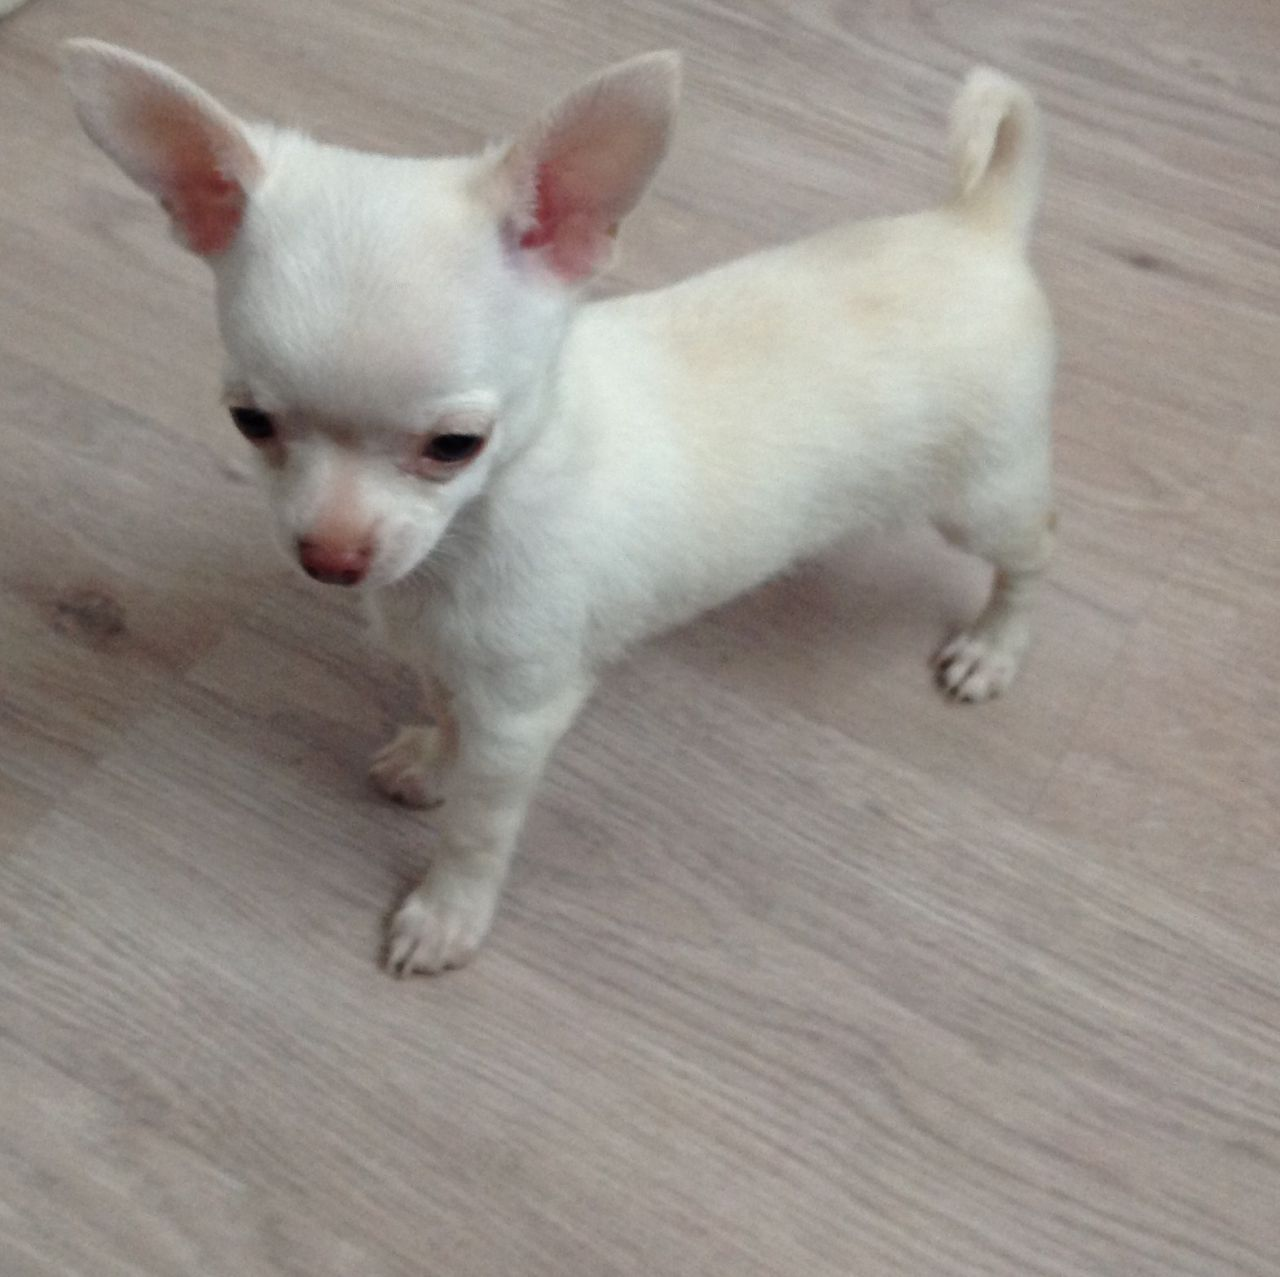 Kc reg white Chihuahua male puppy Chihuahua puppies